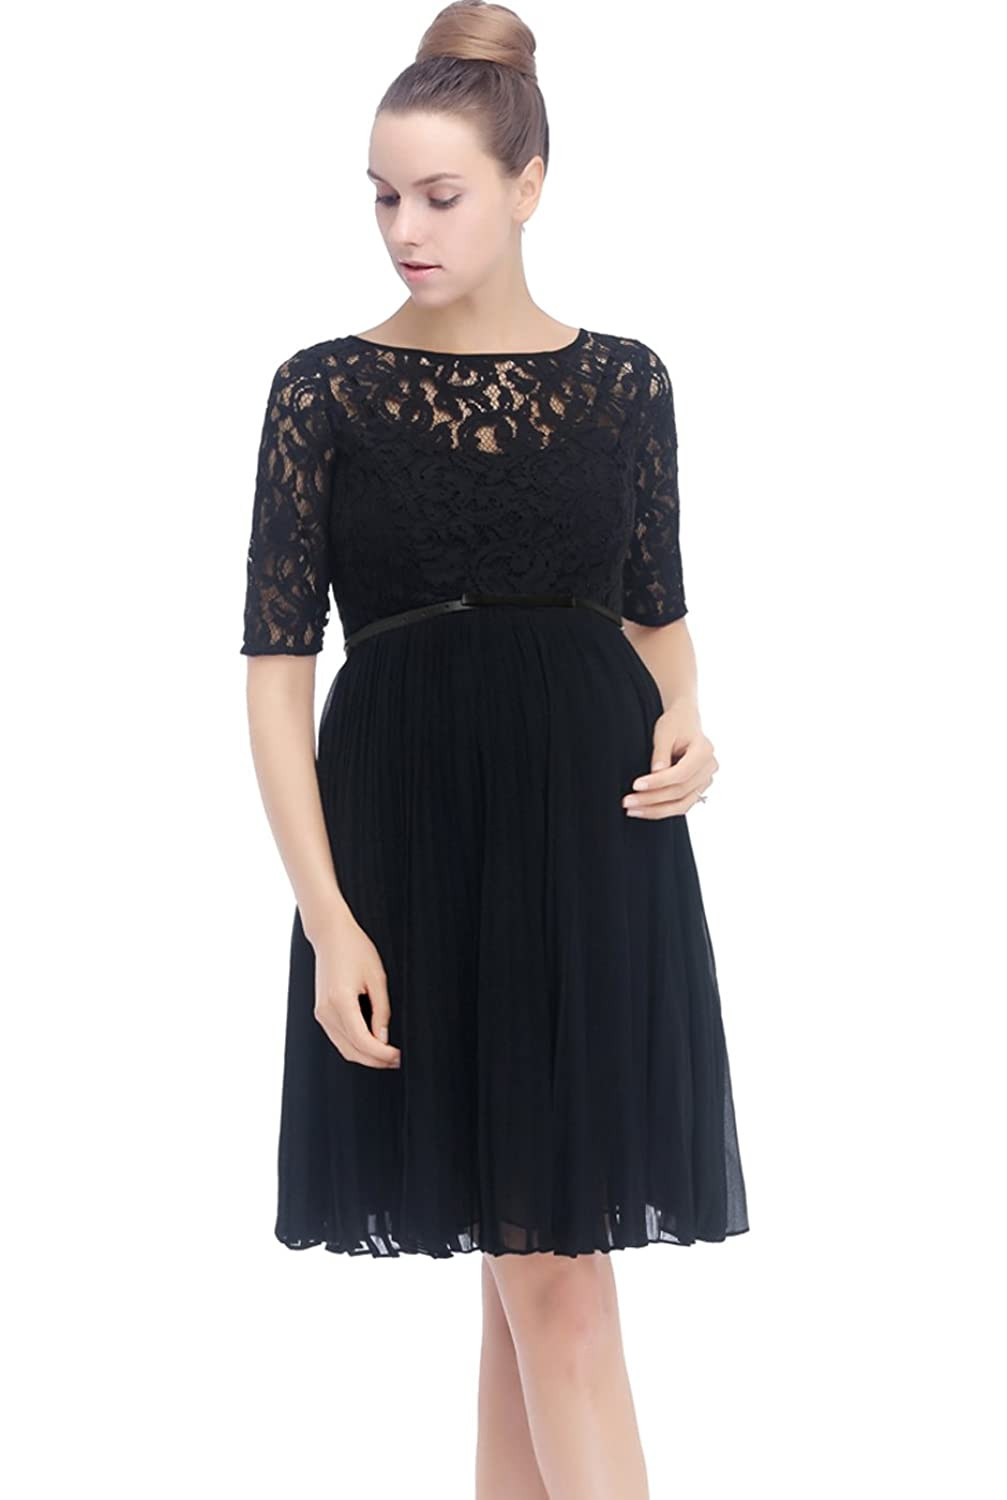 Momo maternity pleated lace fit flare dress at amazon womens momo maternity pleated lace fit flare dress at amazon womens clothing store ombrellifo Image collections